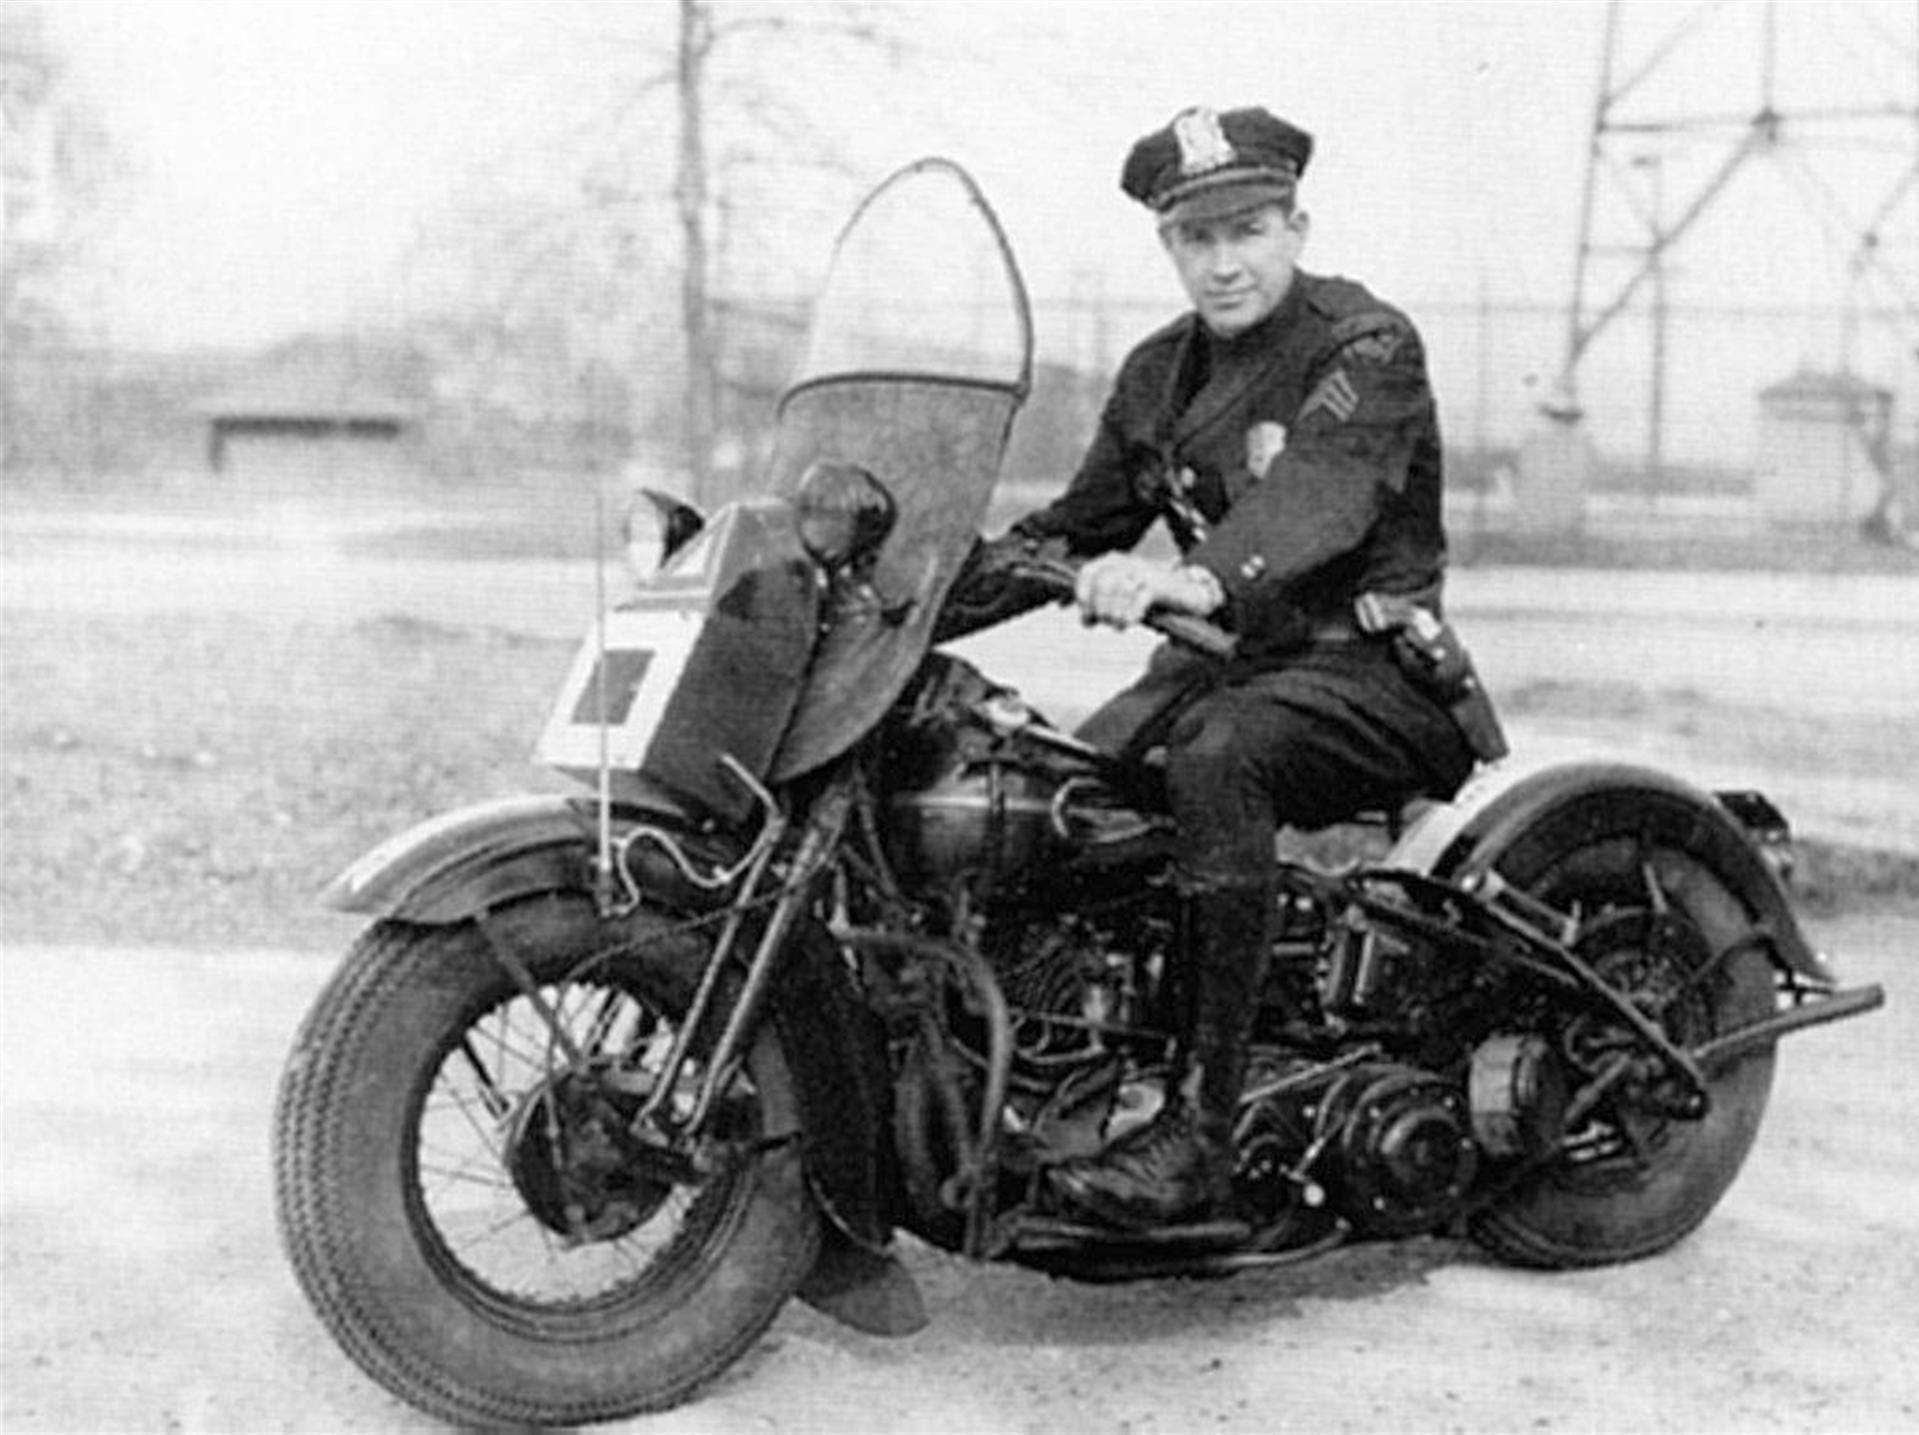 From 1929, this is the first Indianapolis Police Department motorcycle that came equipped with a police radio.